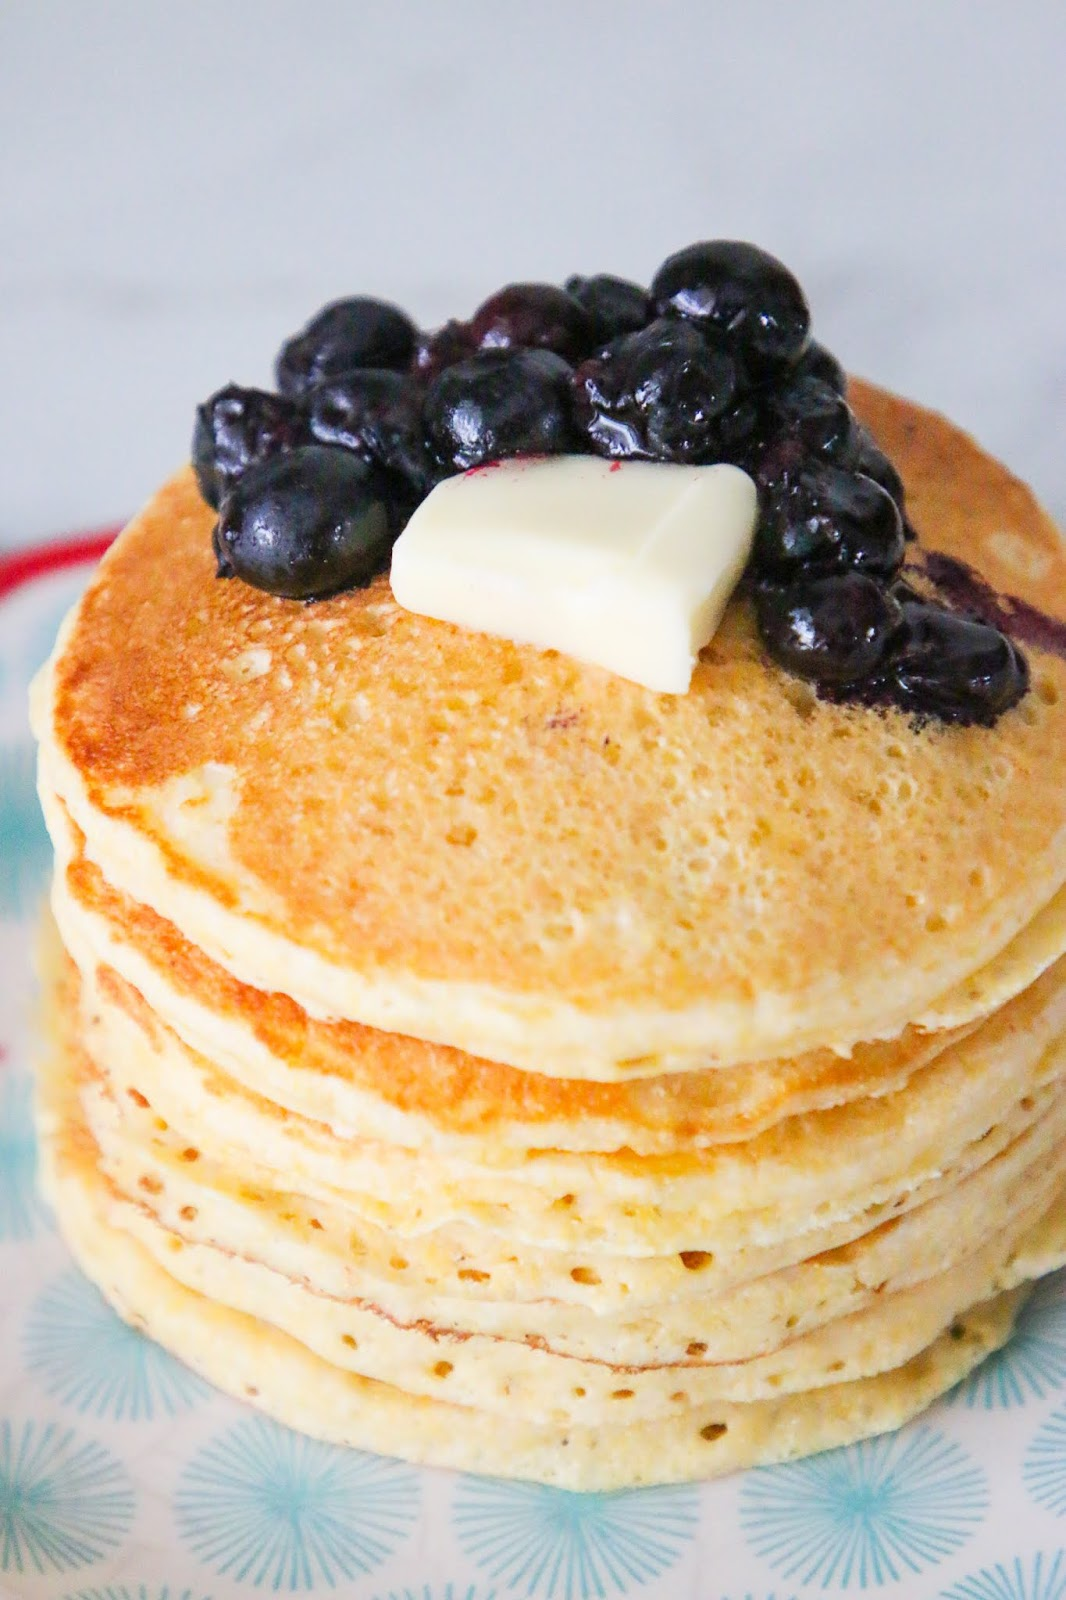 Cornmeal pancakes recipe. Easy food storage breakfast recipe. Pantry staple recipes. Crispy cornmeal pancakes. Whole wheat cornmeal pancakes recipes. Easy cornmeal recipes. Pioneer woman cornmeal pancake recipe. Ways to use cornmeal. Cornmeal foods. Easy Quarantine recipes. #cornmeal #pancakes #breakfast #pioneerwoman #foodstoarge #quarantine #madefromscratch #cornbread #recipes #easyrecipes #food